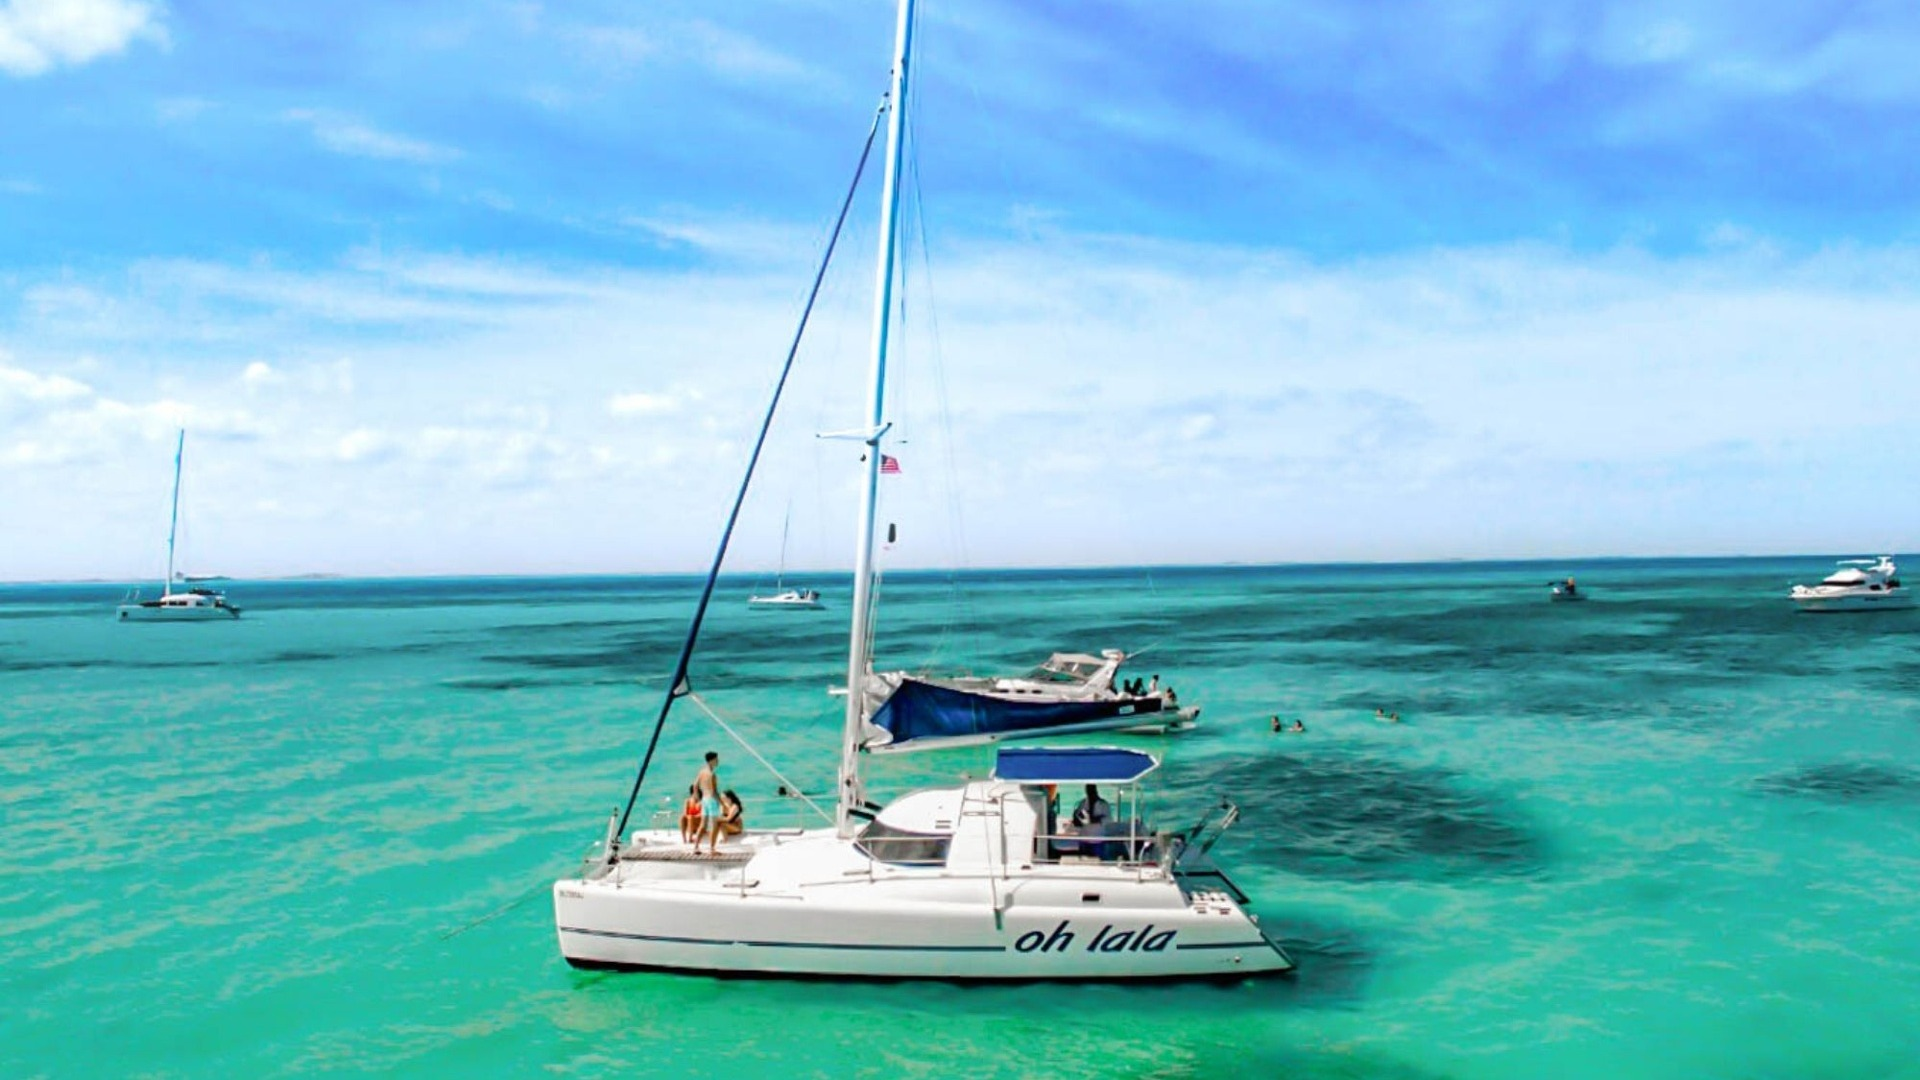 Oh La La - Private tour to Isla Mujeres in catamaran - Cancun Sailing